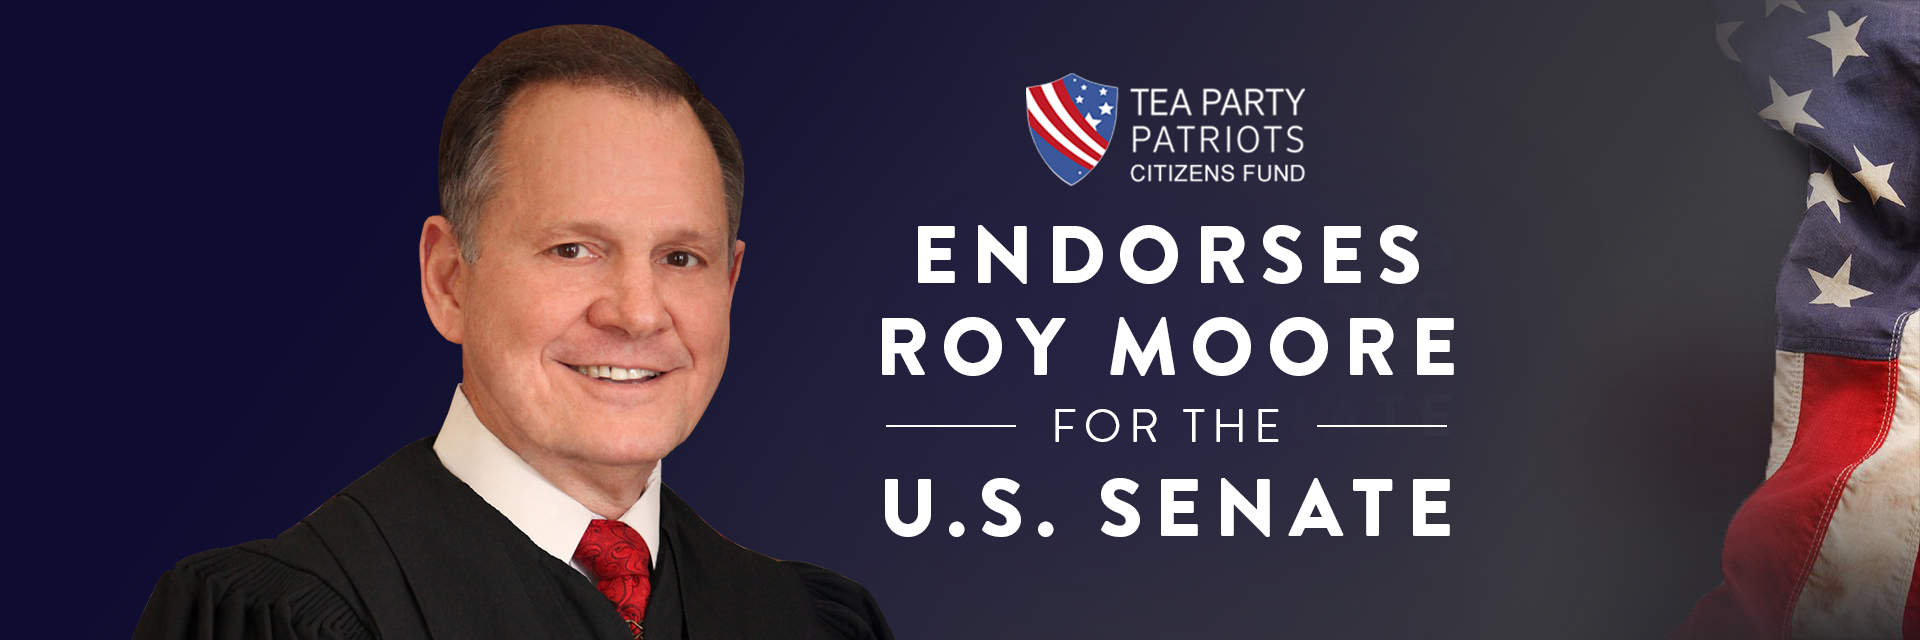 TPP_Roy-Moore-endorsement